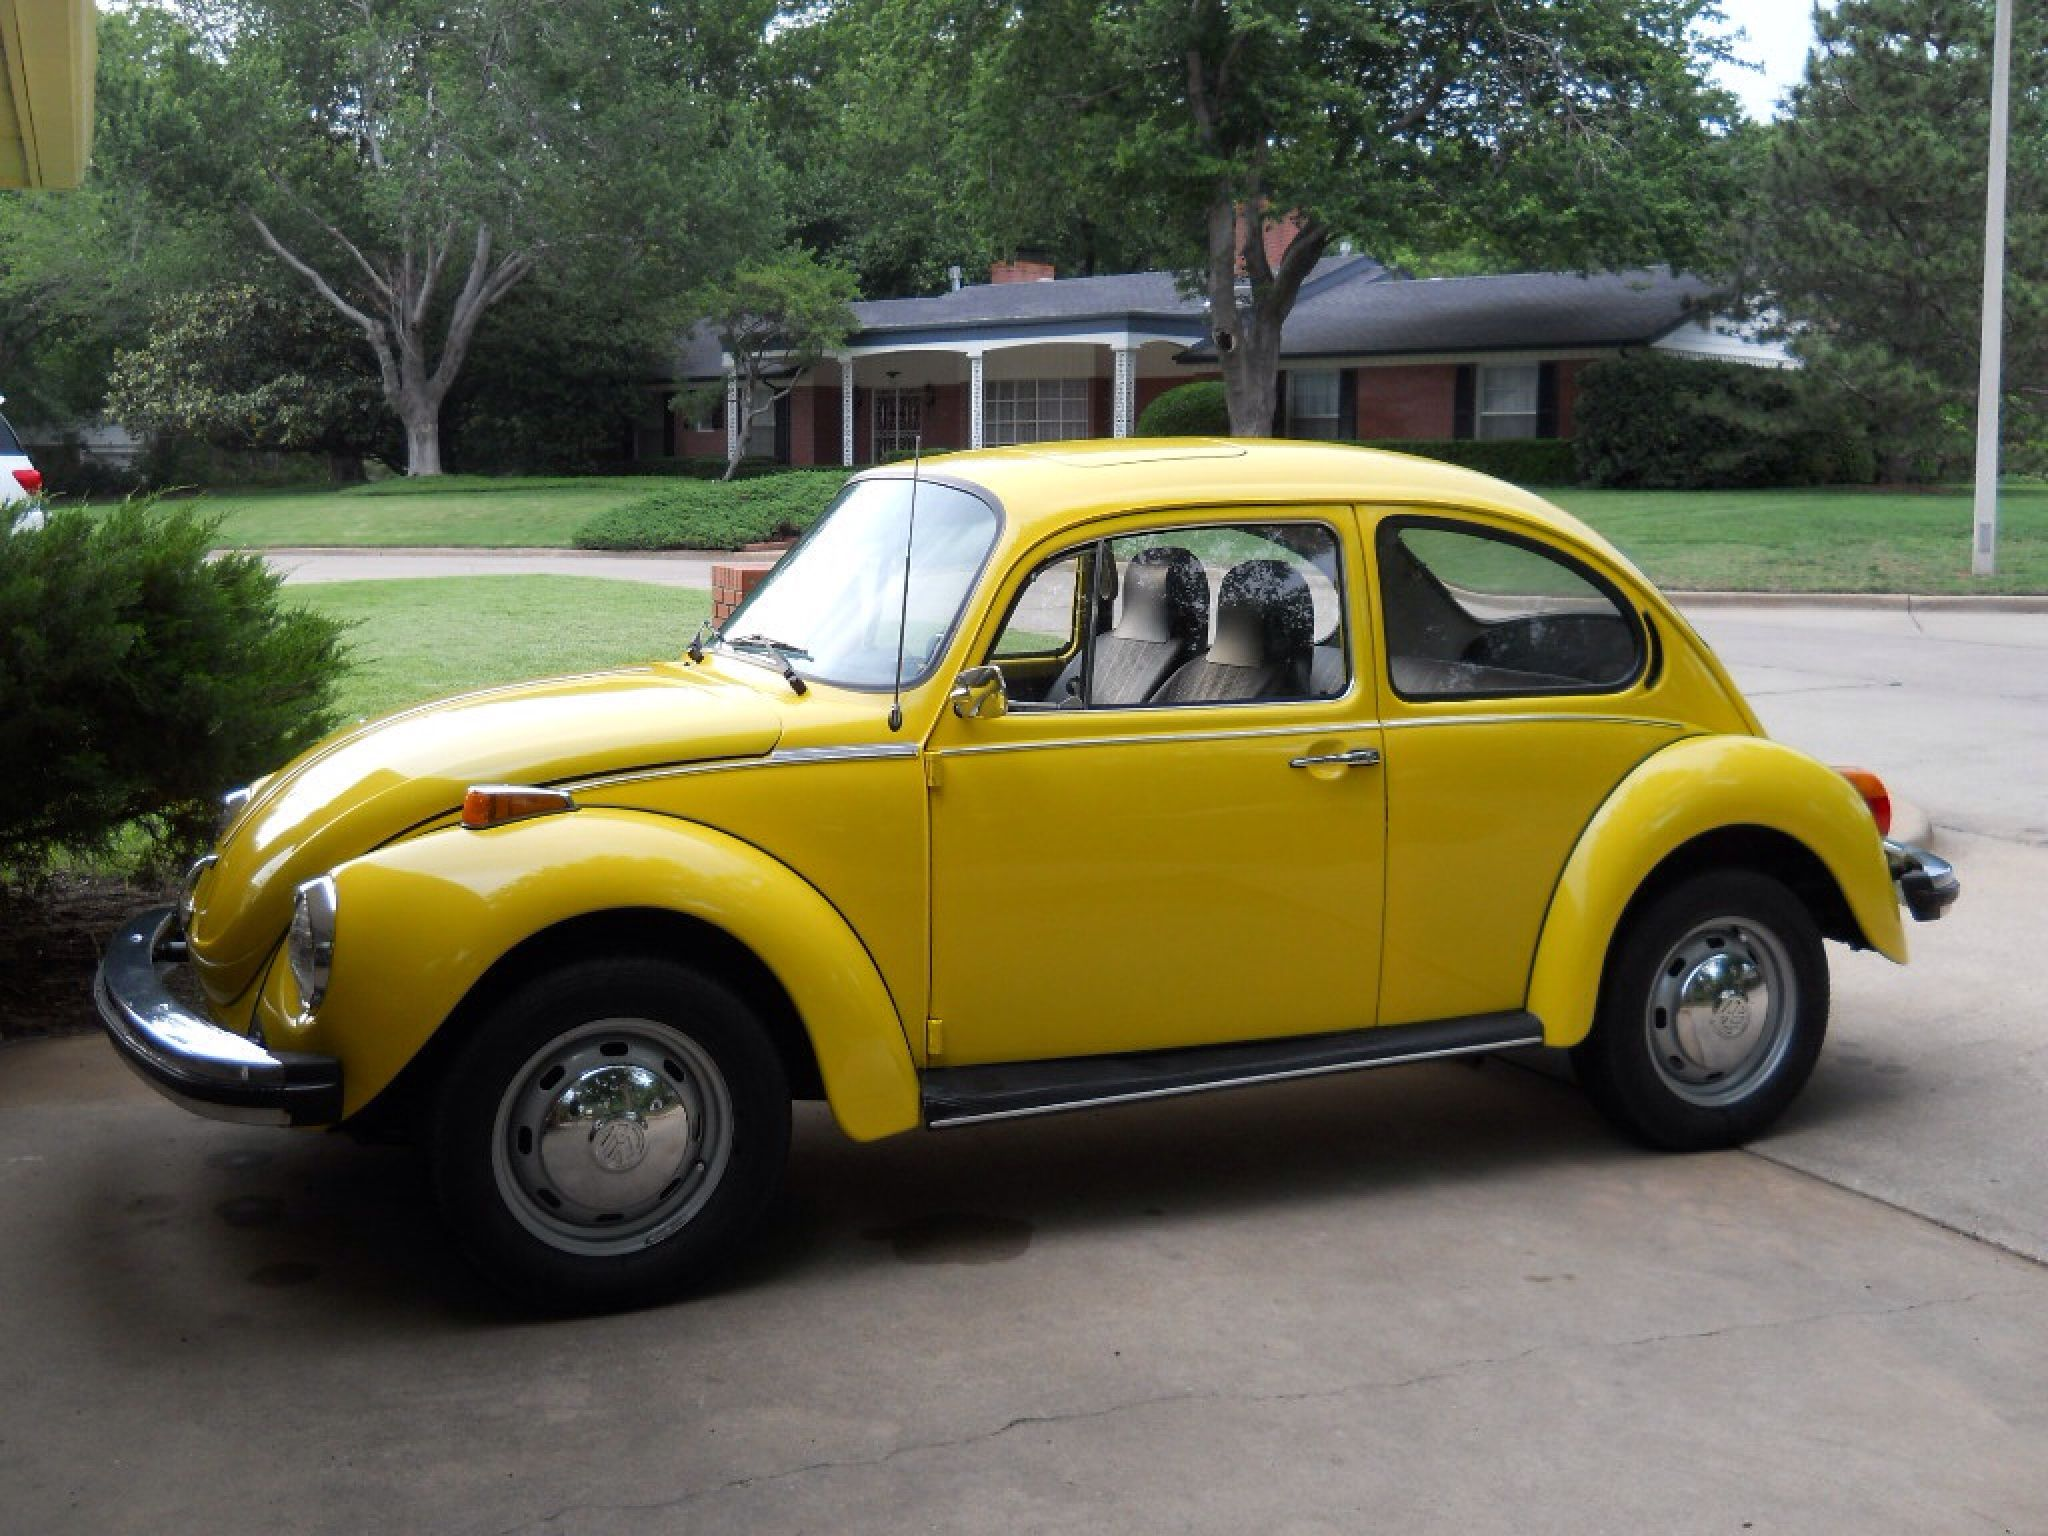 1974 vw super beetle vw super beetle 1974 vw super. Black Bedroom Furniture Sets. Home Design Ideas